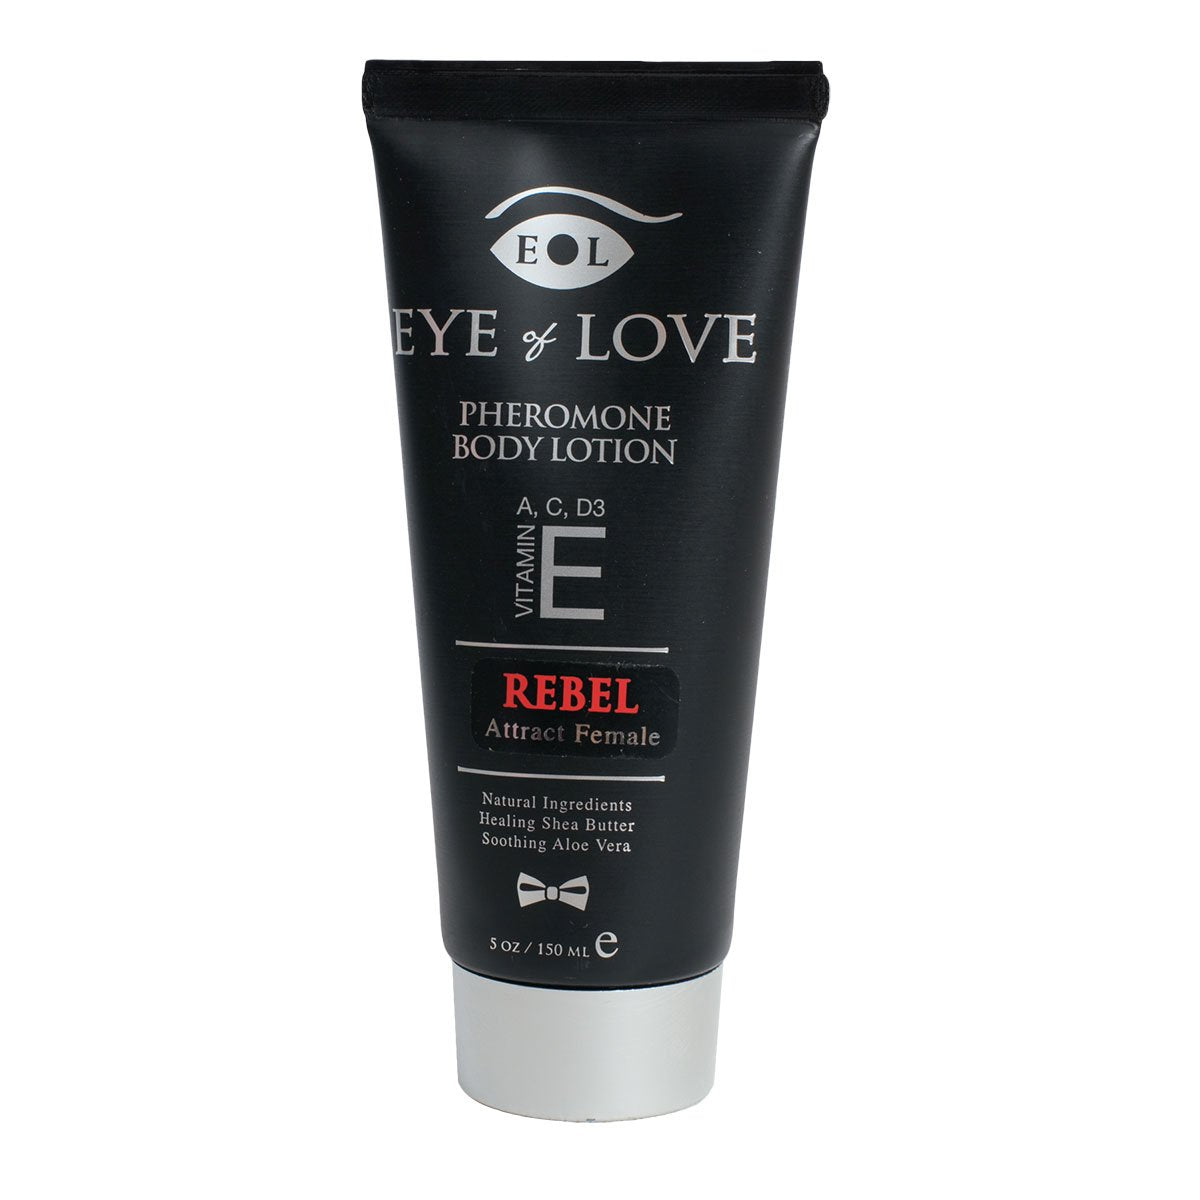 Eye of Love - Love in the Sun Body Lotion 150ml - Rebel